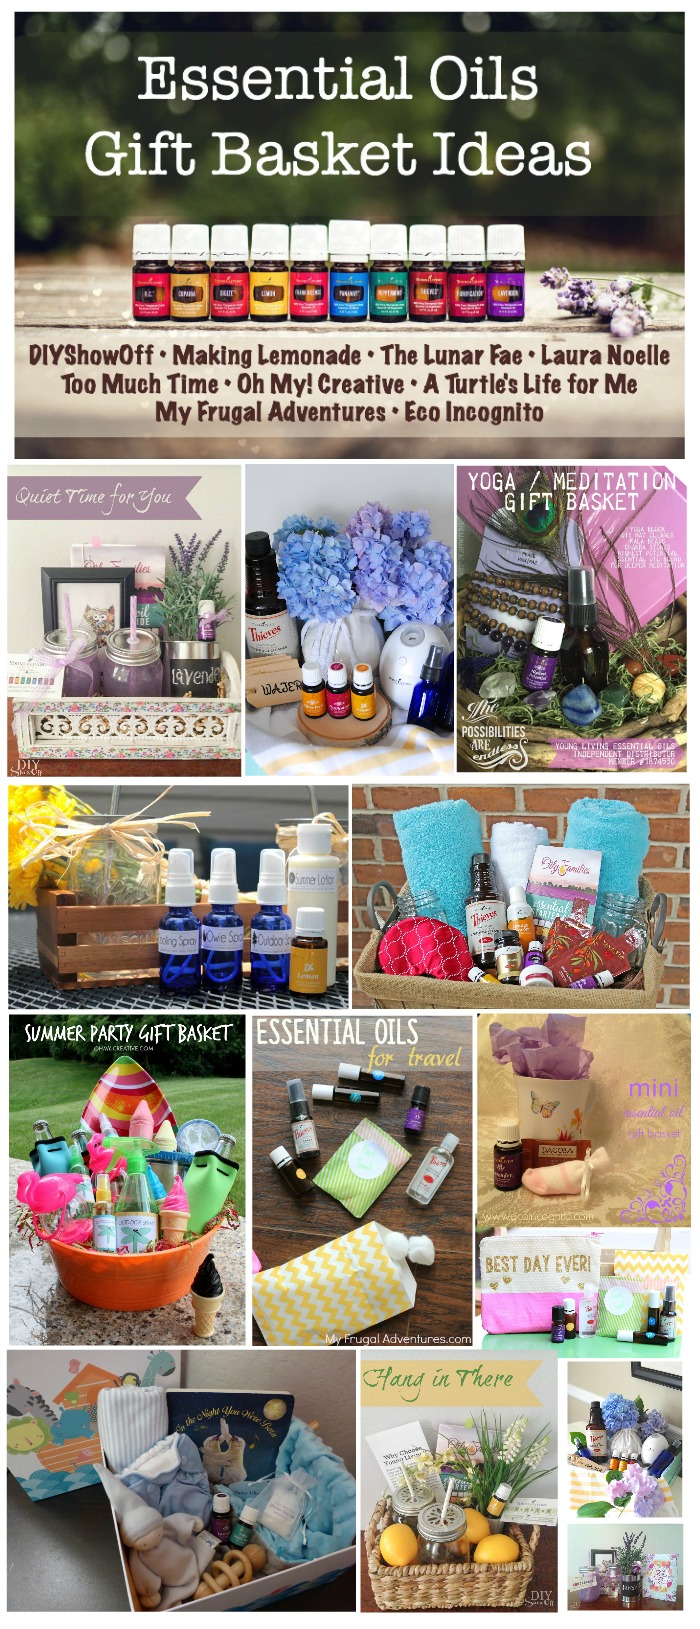 Essential Oils Gift Basket Blog Hop